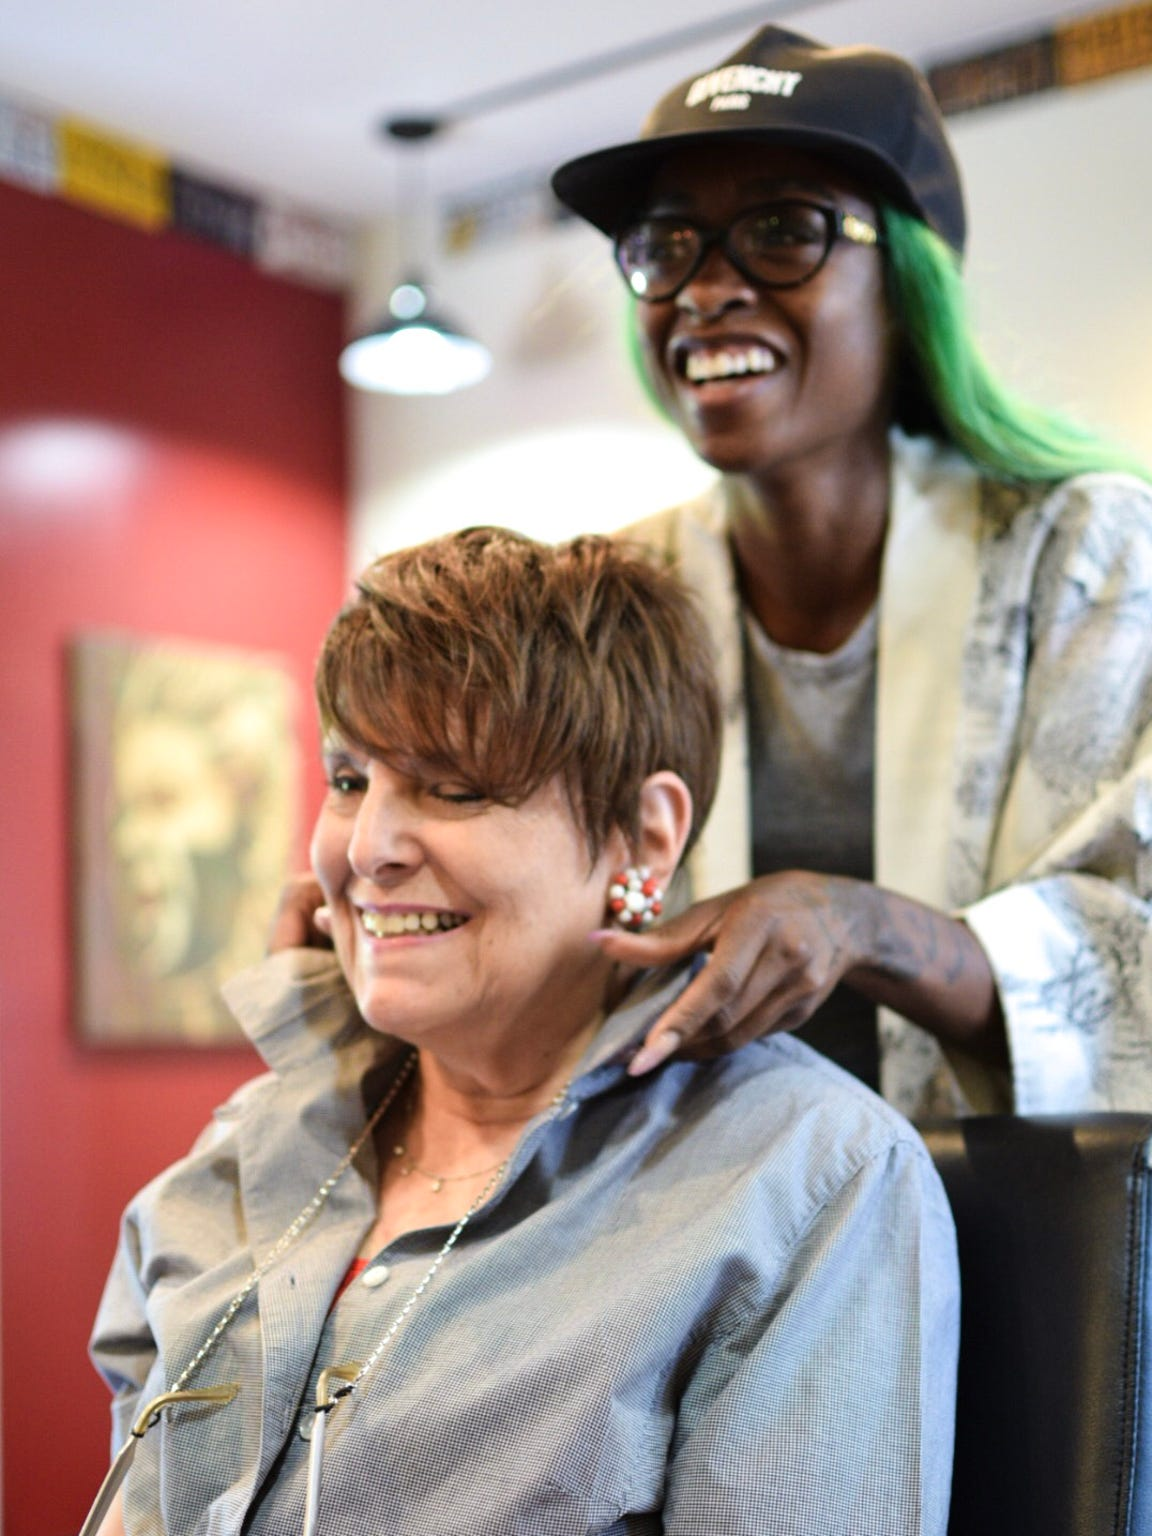 Rabbi Lynne Landsberg's former hairstylist in Washington, D.C., Quarita Futrell from On The Runnn, drove down to Staunton with her sister to fashion a wig for Landsberg, who lost her hair from chemotherapy. Landsberg's stylist Grail Ogzewalla from The Shop in Staunton let them use the salon.